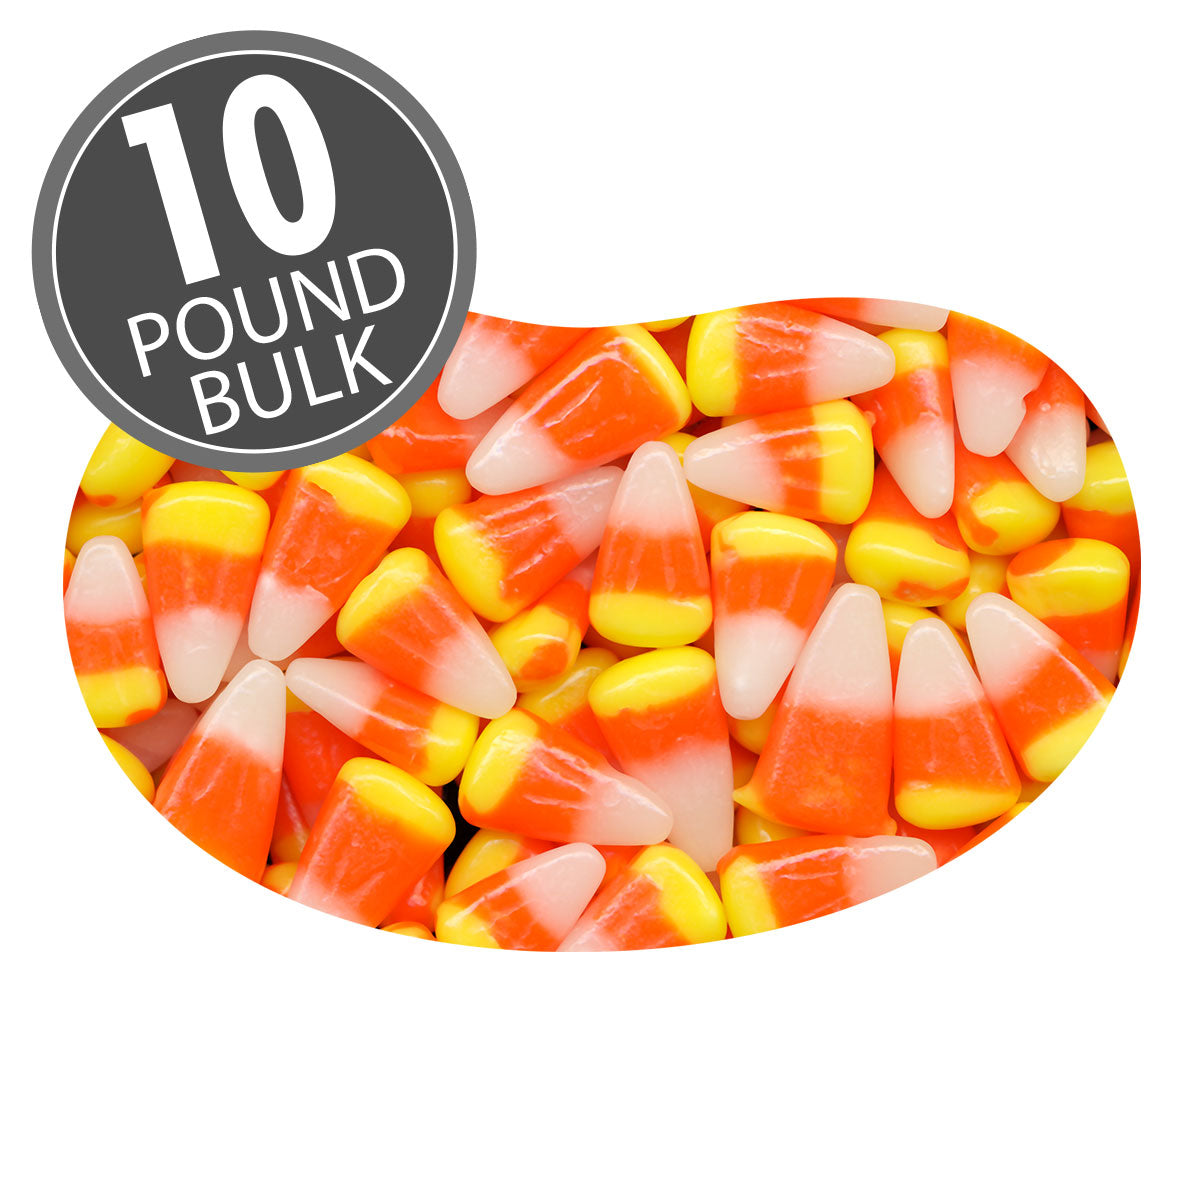 Jelly Belly Candy Corn 10lb-online-candy-store-179C